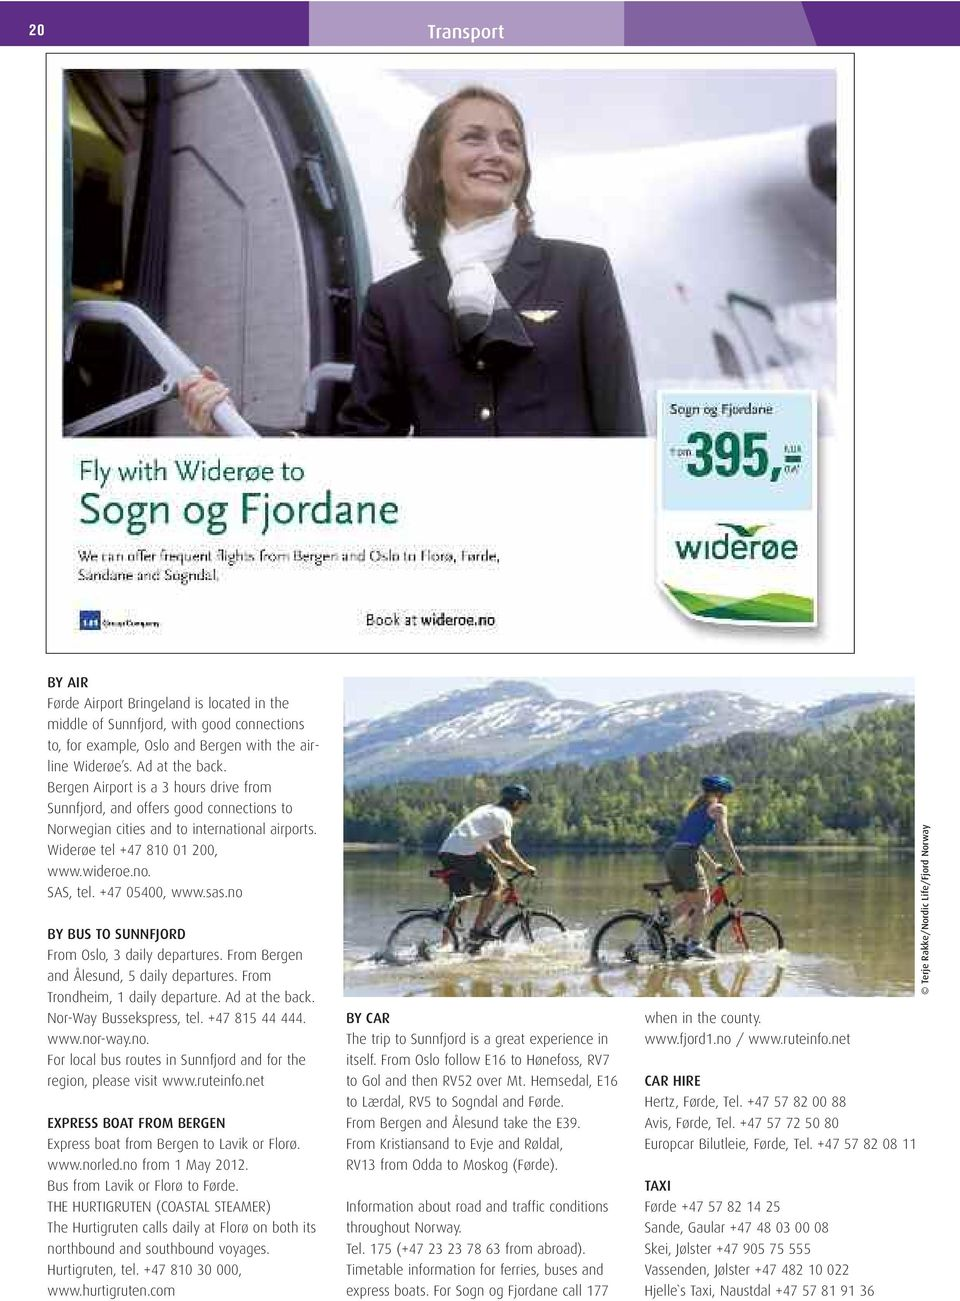 sas.no BY BUS TO SUNNFJORD From Oslo, 3 daily departures. From Bergen and Ålesund, 5 daily departures. From Trondheim, 1 daily departure. Ad at the back. Nor-Way Bussekspress, tel. +47 815 44 444.